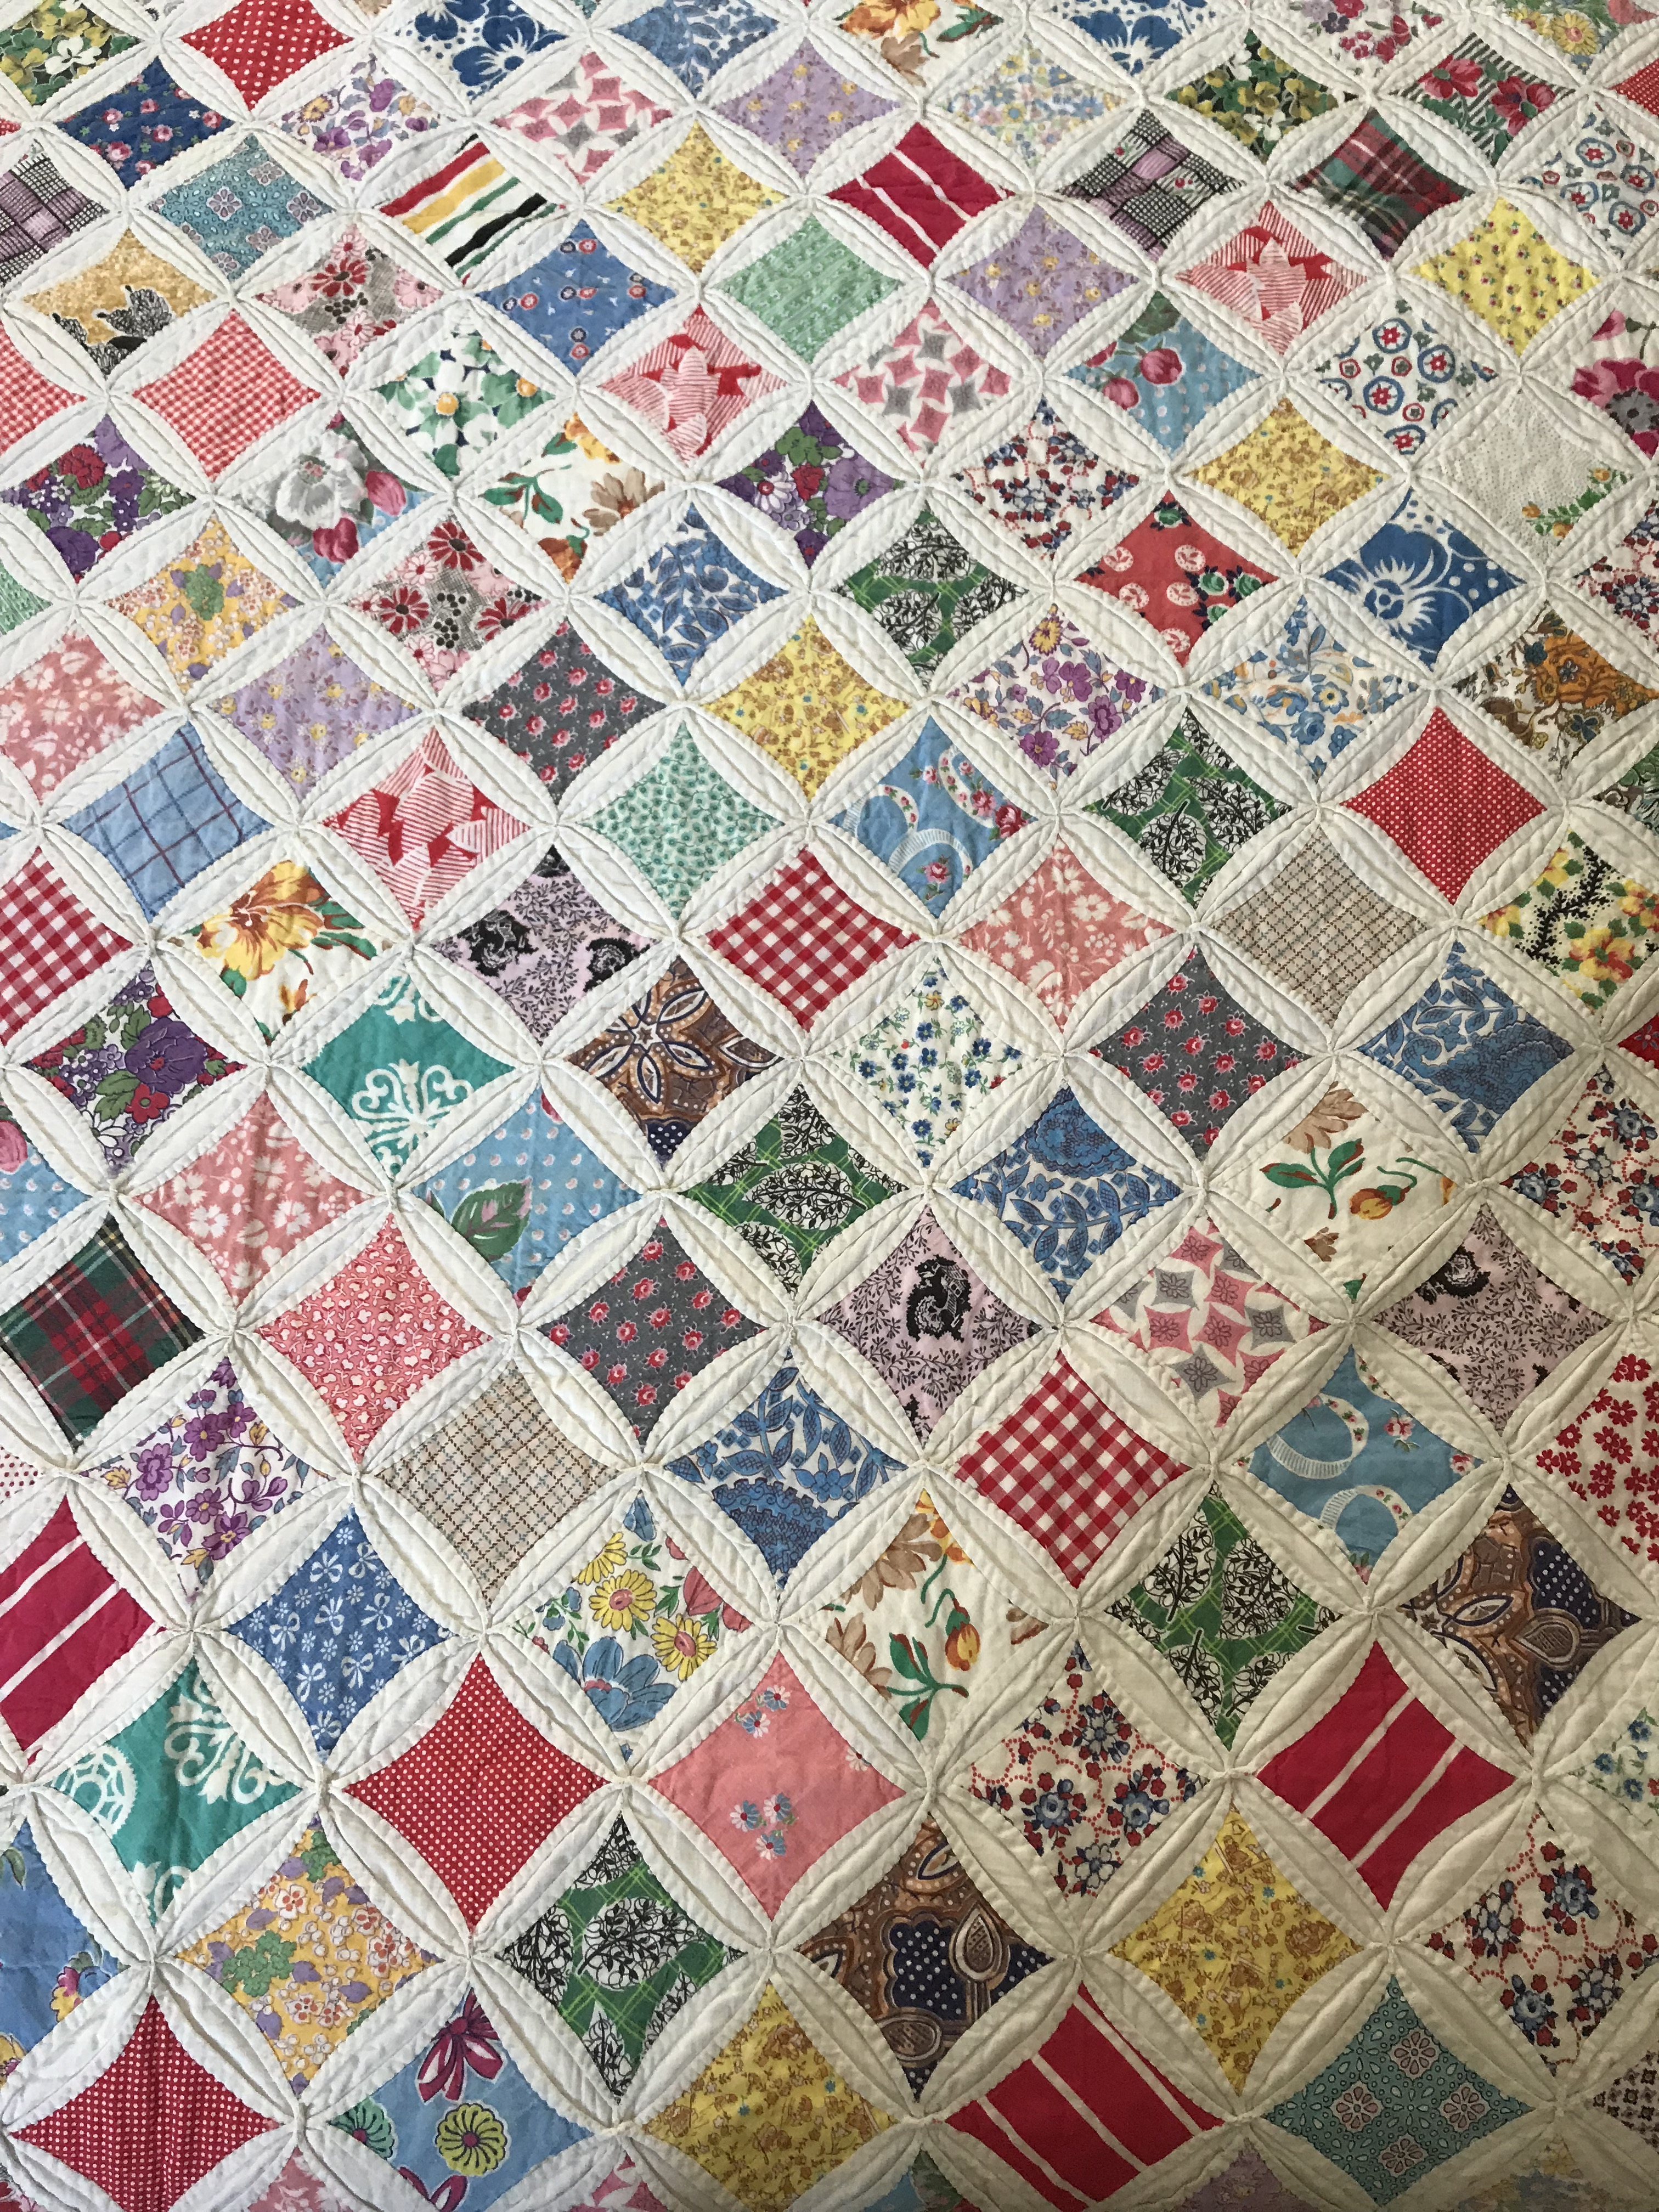 old quilt tops | The Plain Needlewoman